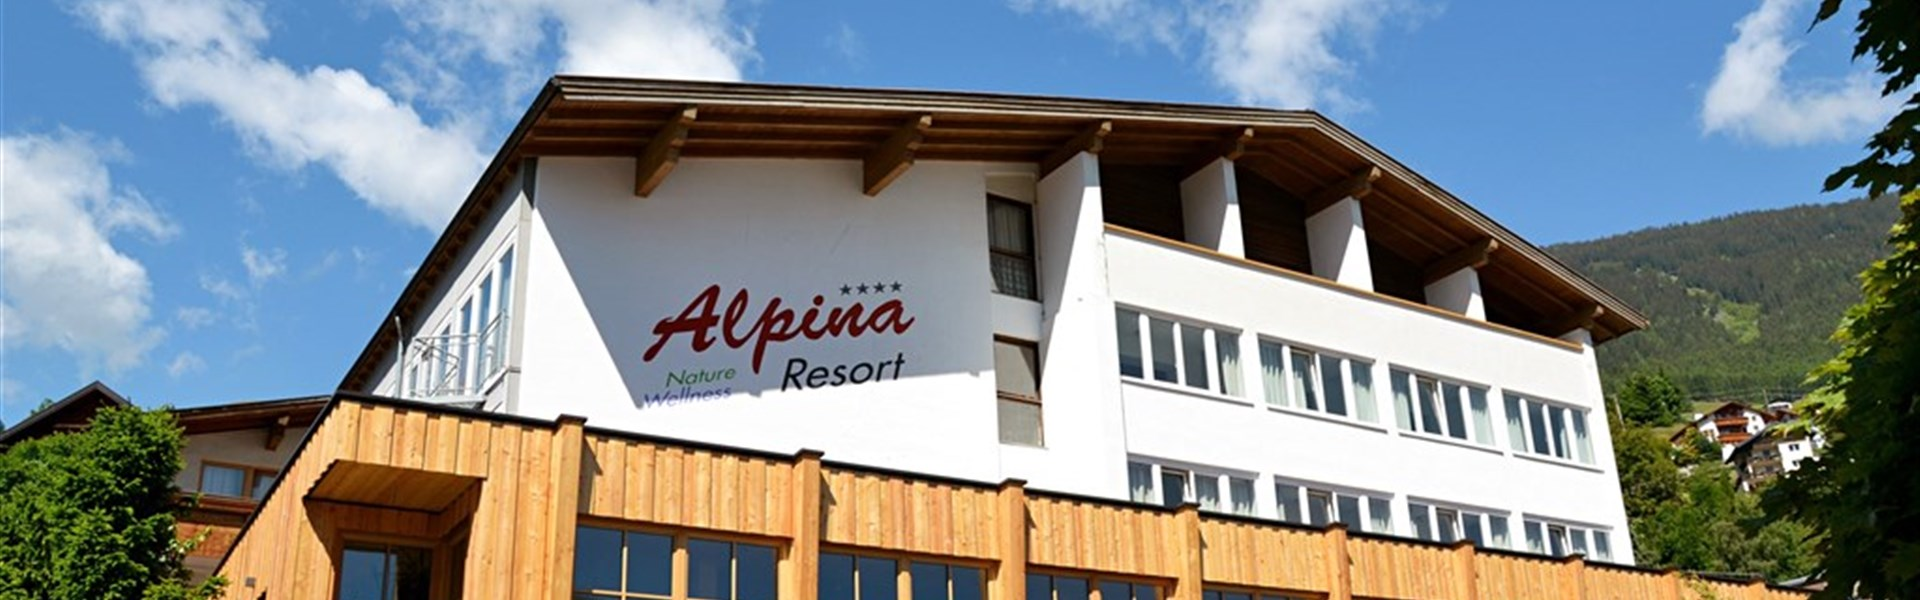 Marco Polo - Hotel Alpina Resort Nature & Wellness -